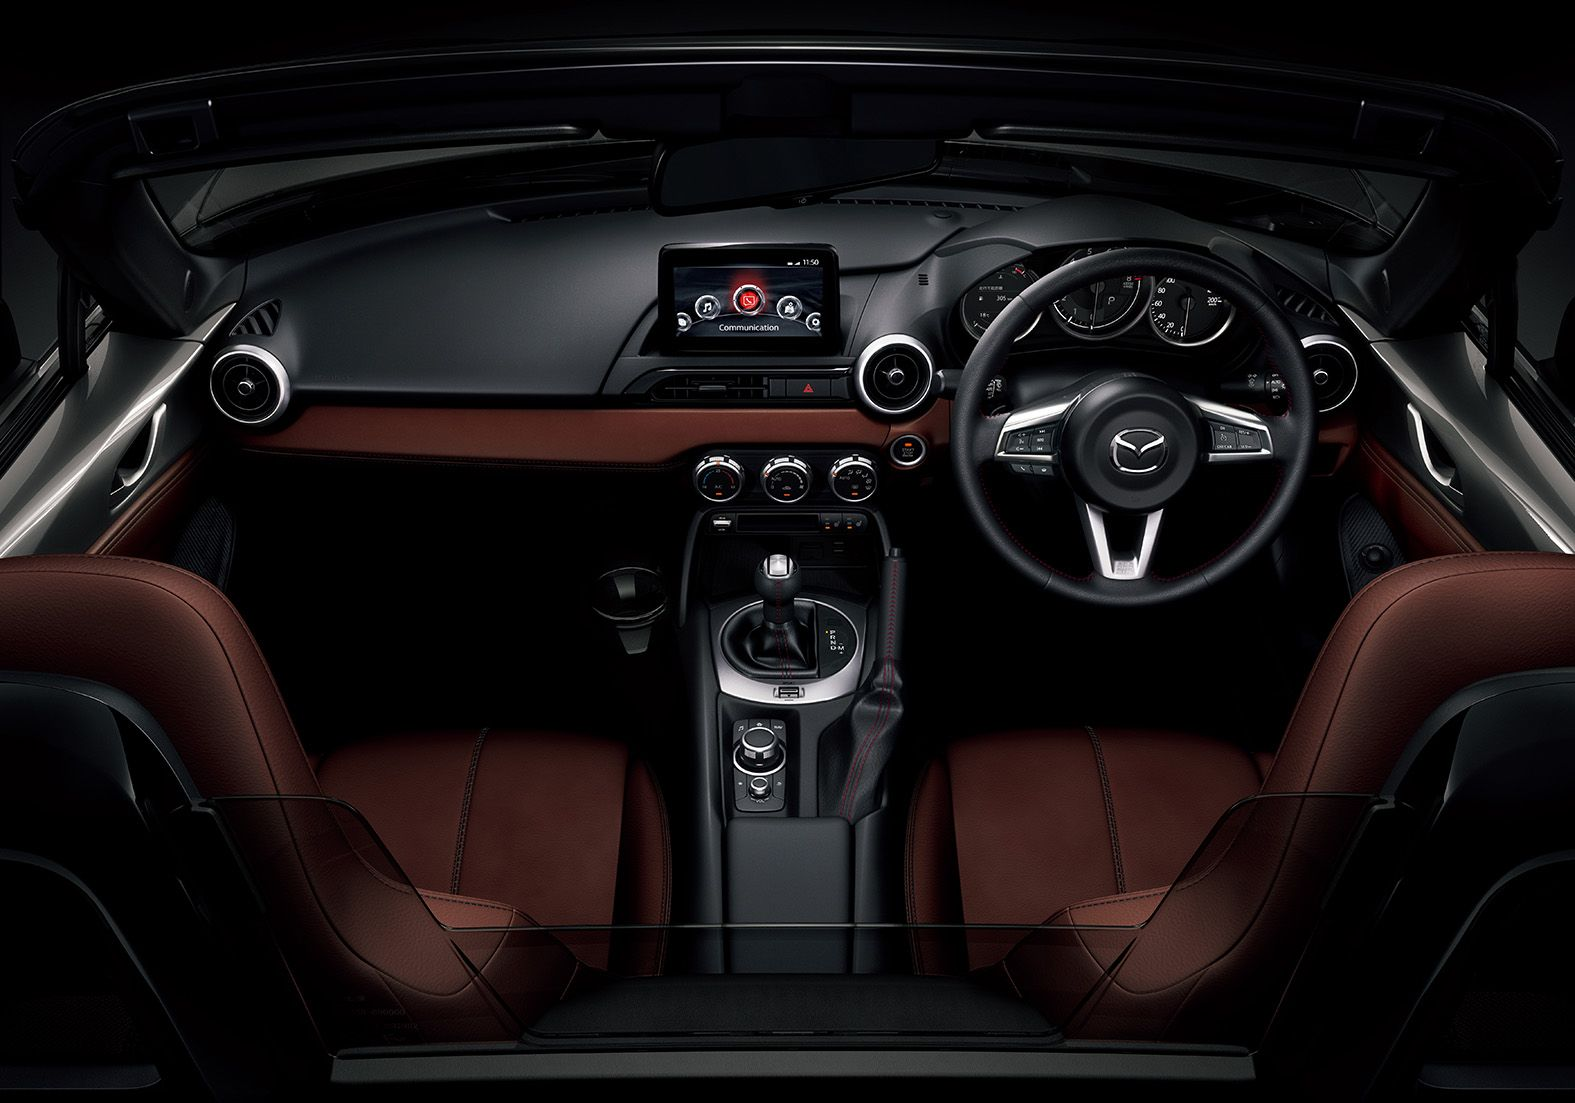 The 2019 Mazda MX-5 Miata To Come With More Power And Higher